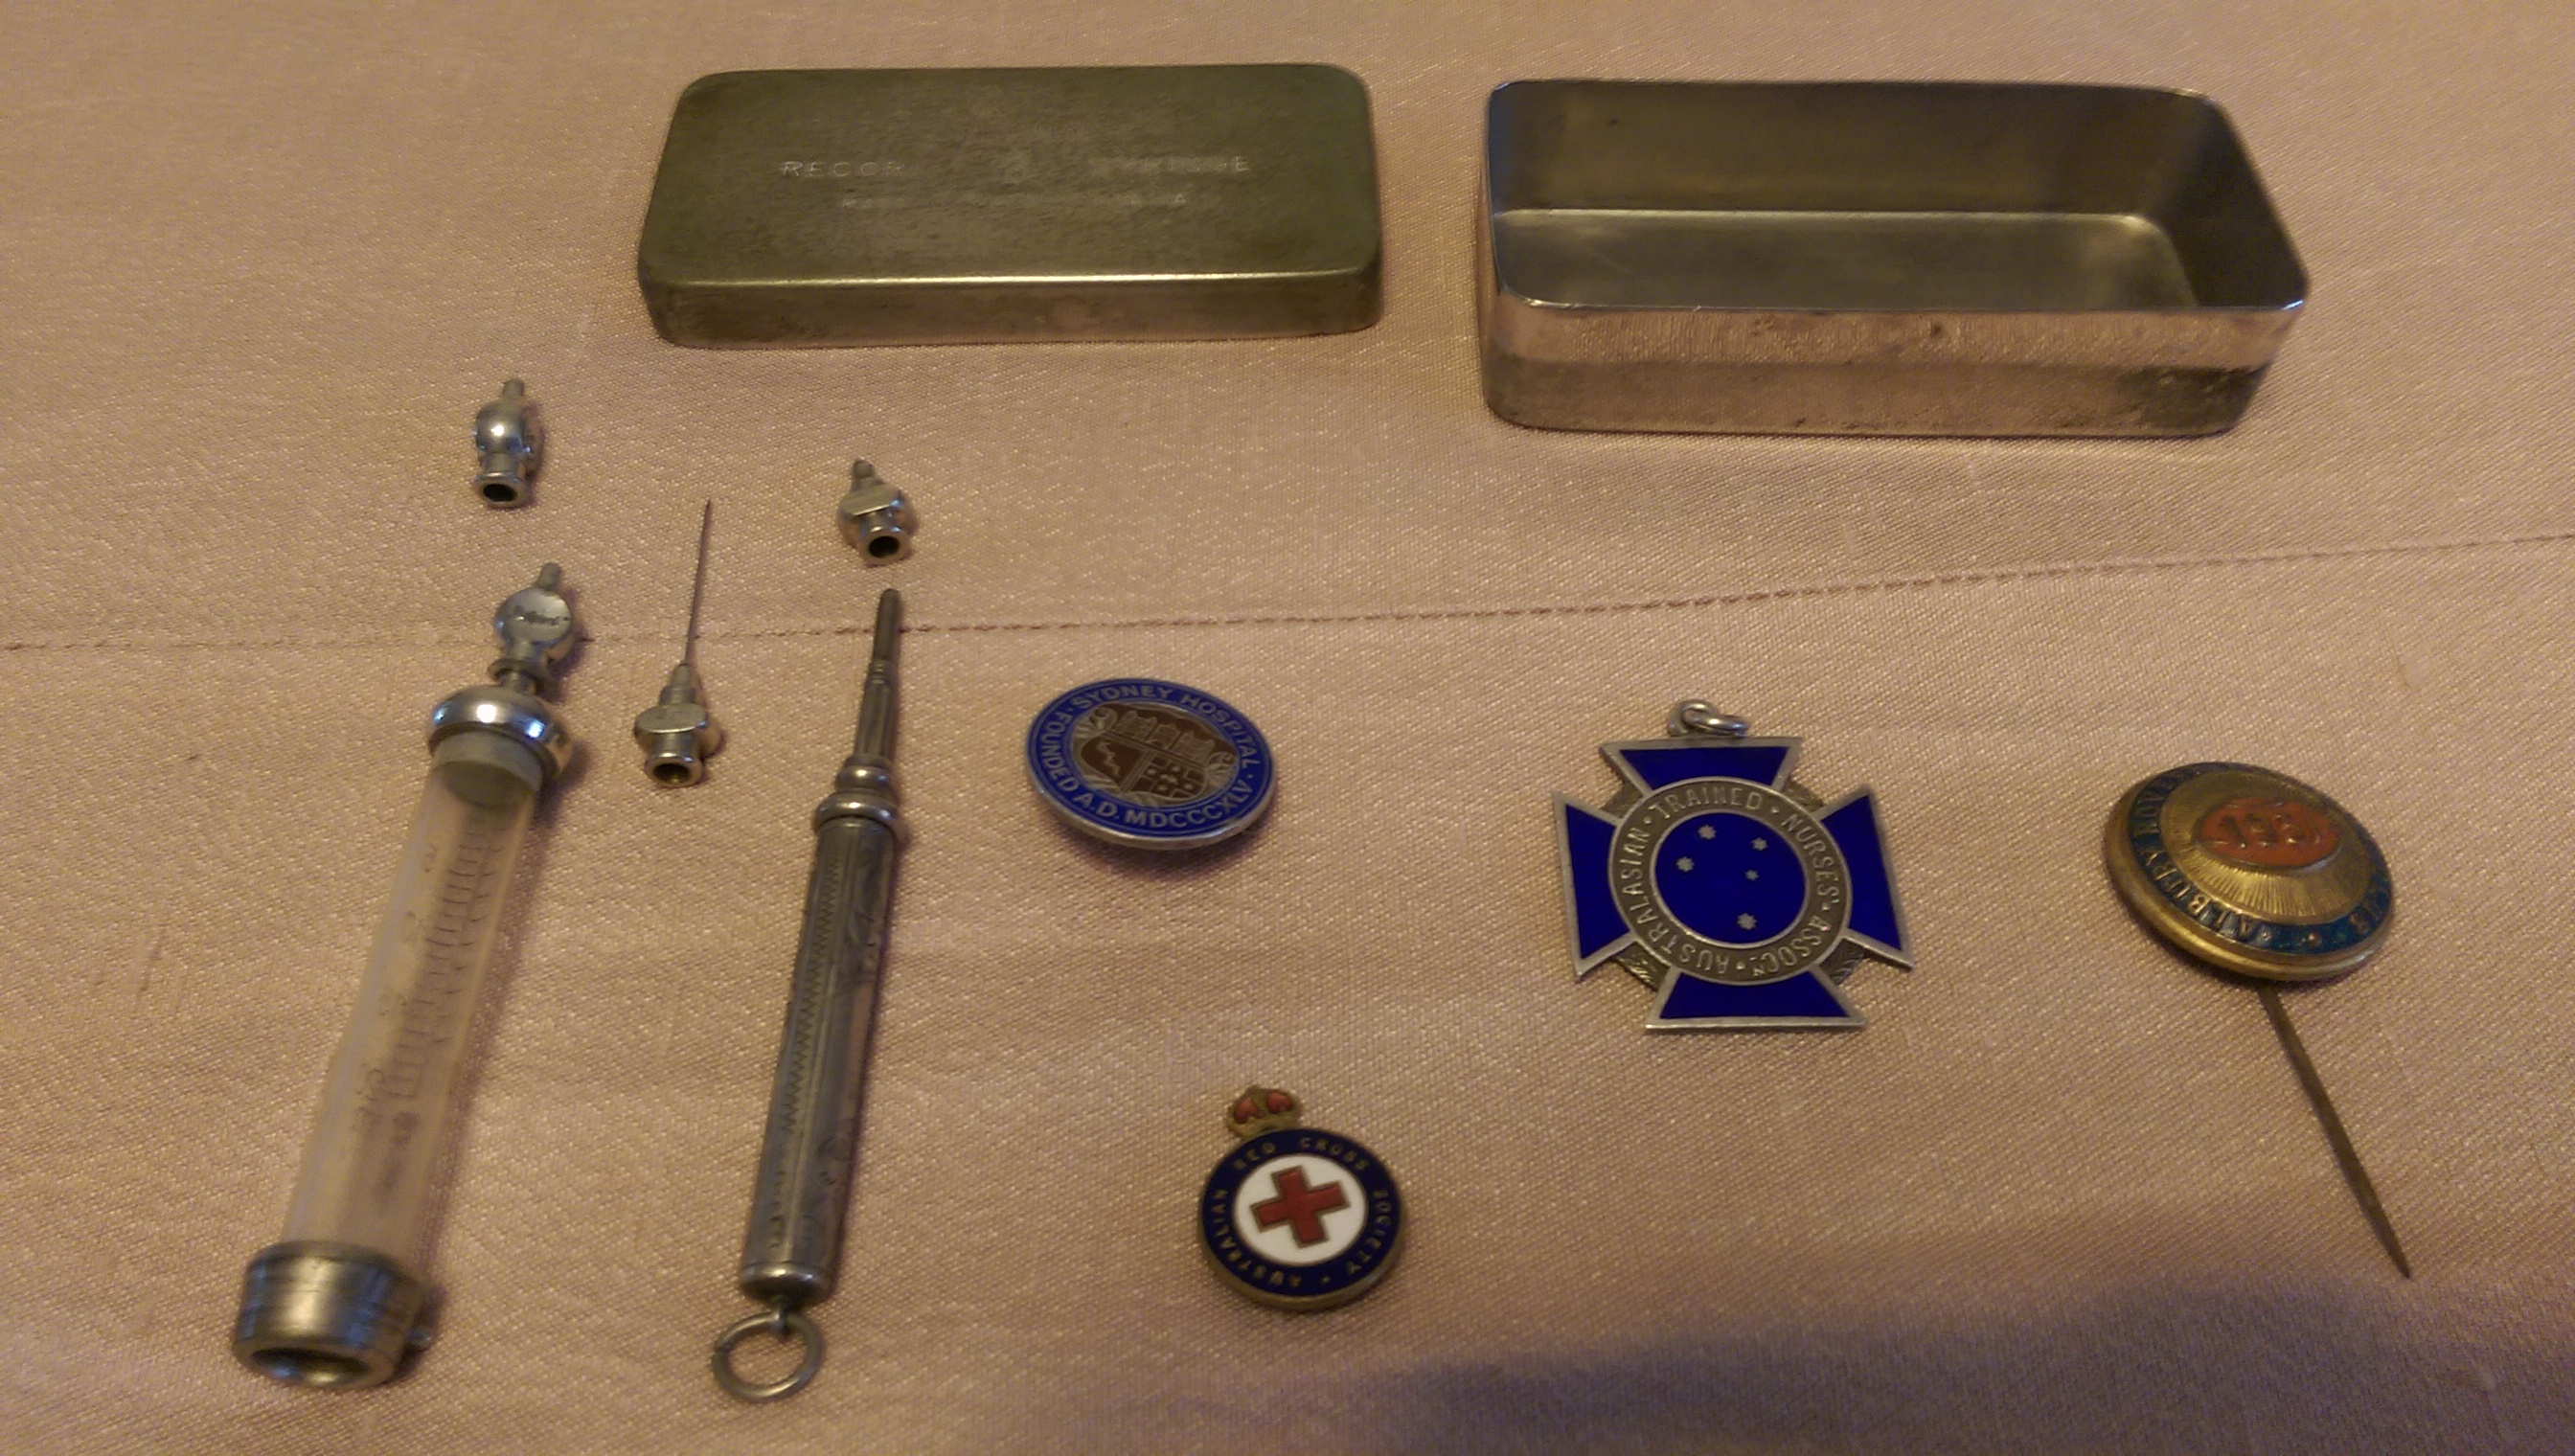 109 YEAR OLD CLEMENTINA PRIVATE NURSING STAFF BADGE OFF HER UNIFORM SYDNEY HOSPITAL. THE SYRINGE IS